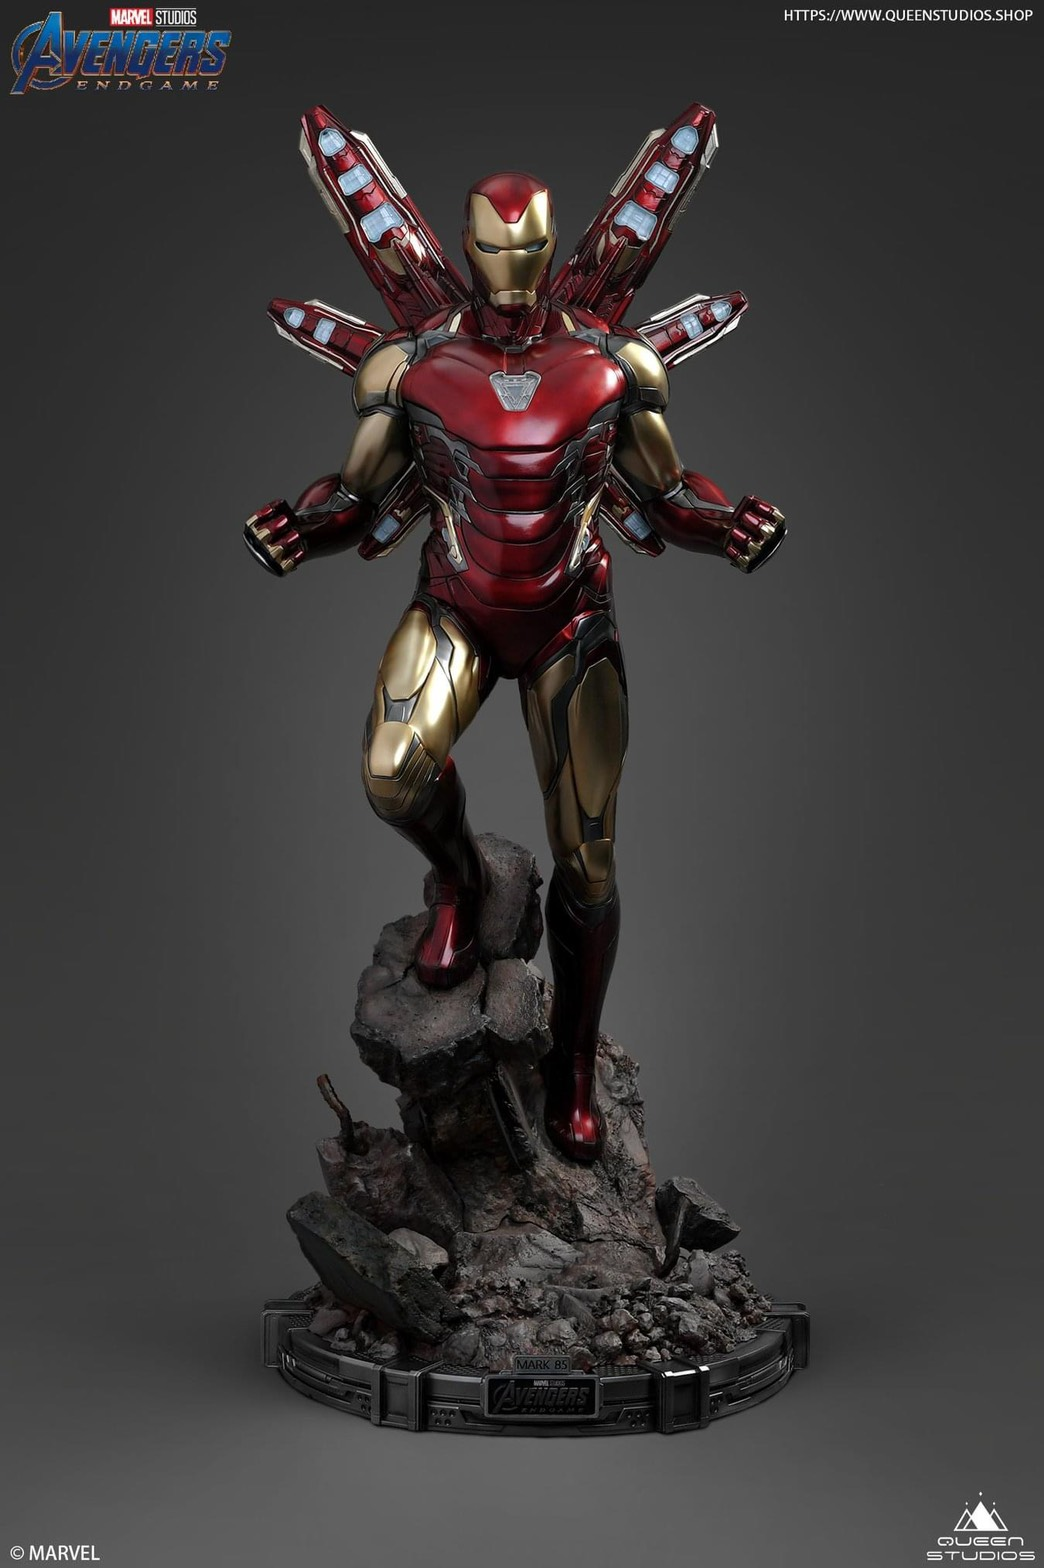 Iron man MK 85 Queen Studio (มัดจำ)